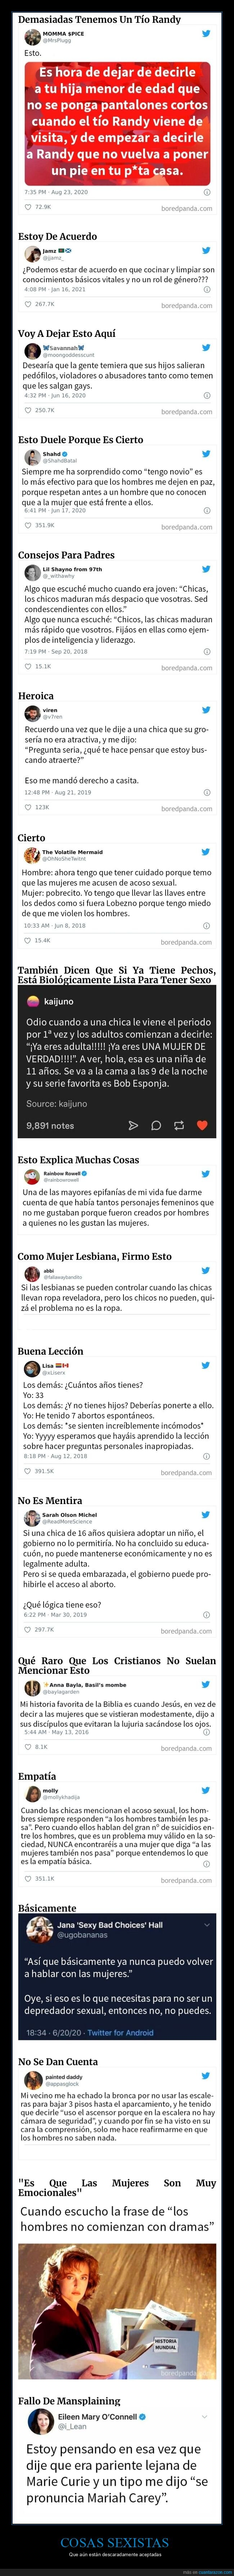 mujeres,sexismo